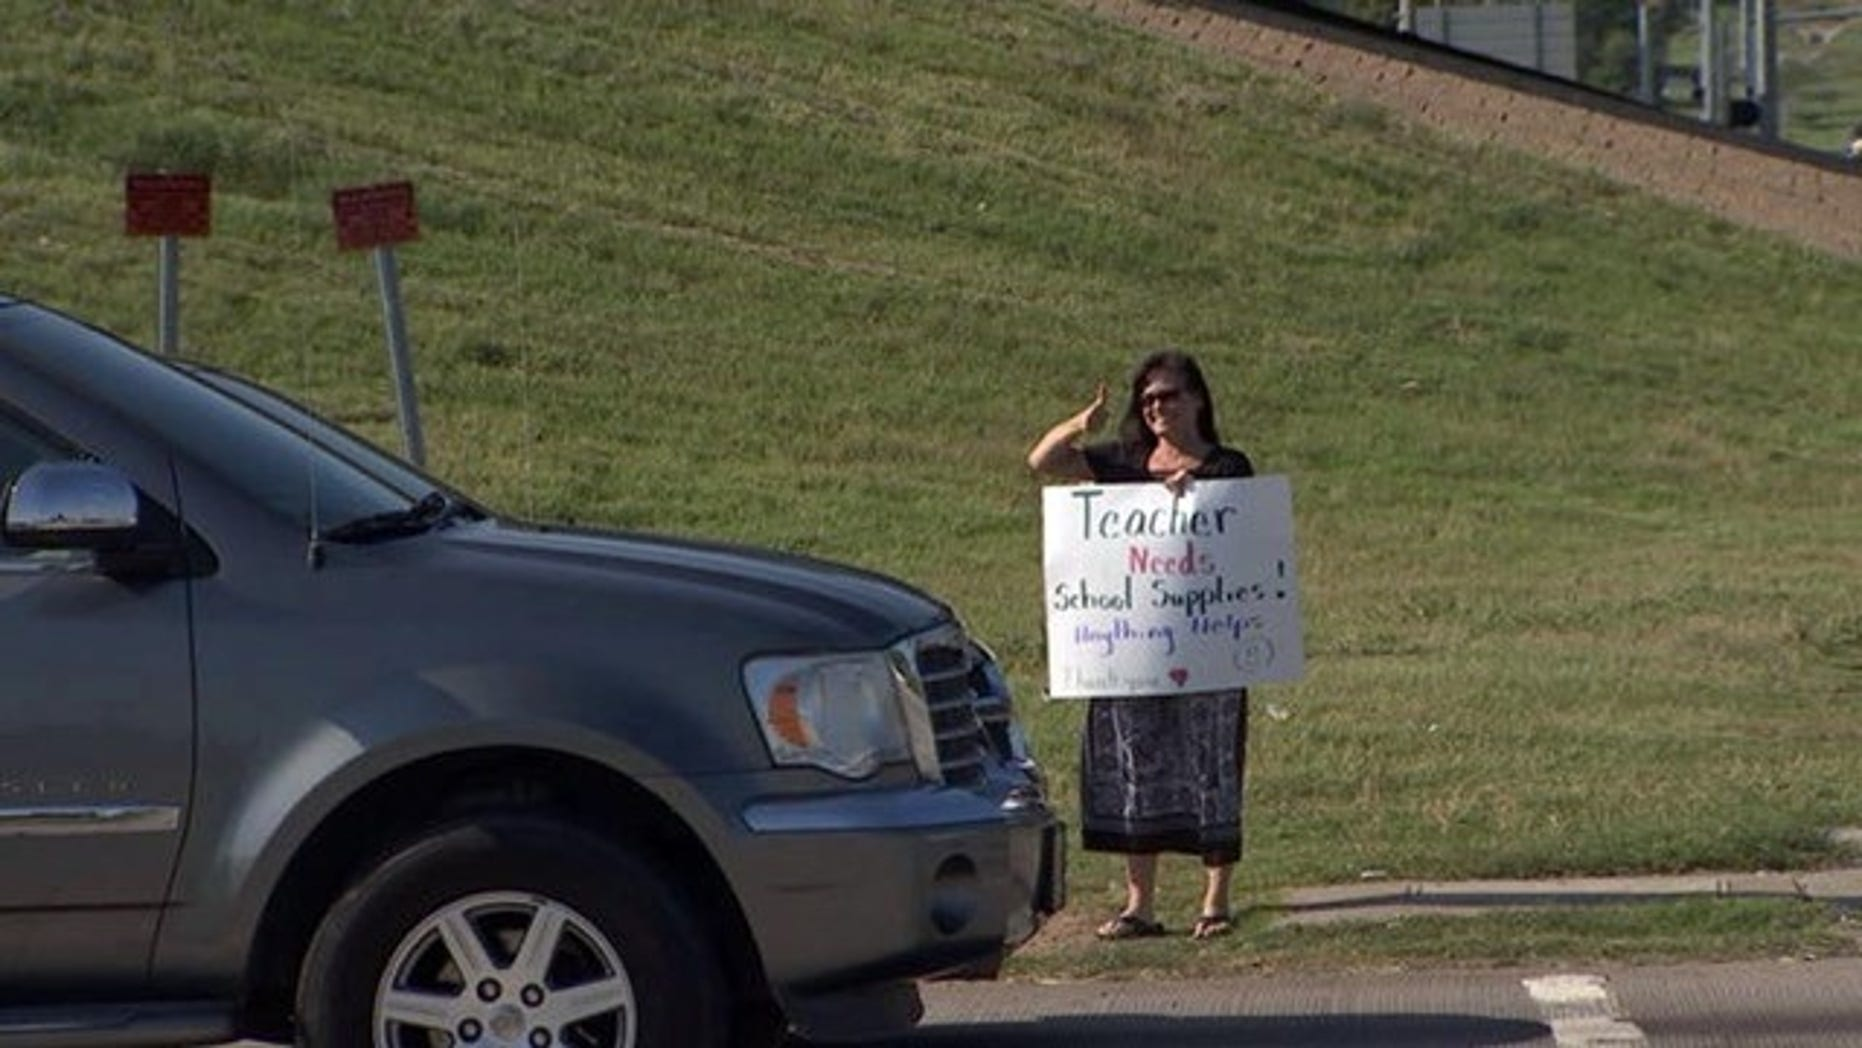 Tulsa, Okla., third-grade teacher Teresa Danks took to panhandling in order to raise money to buy classroom supplies.